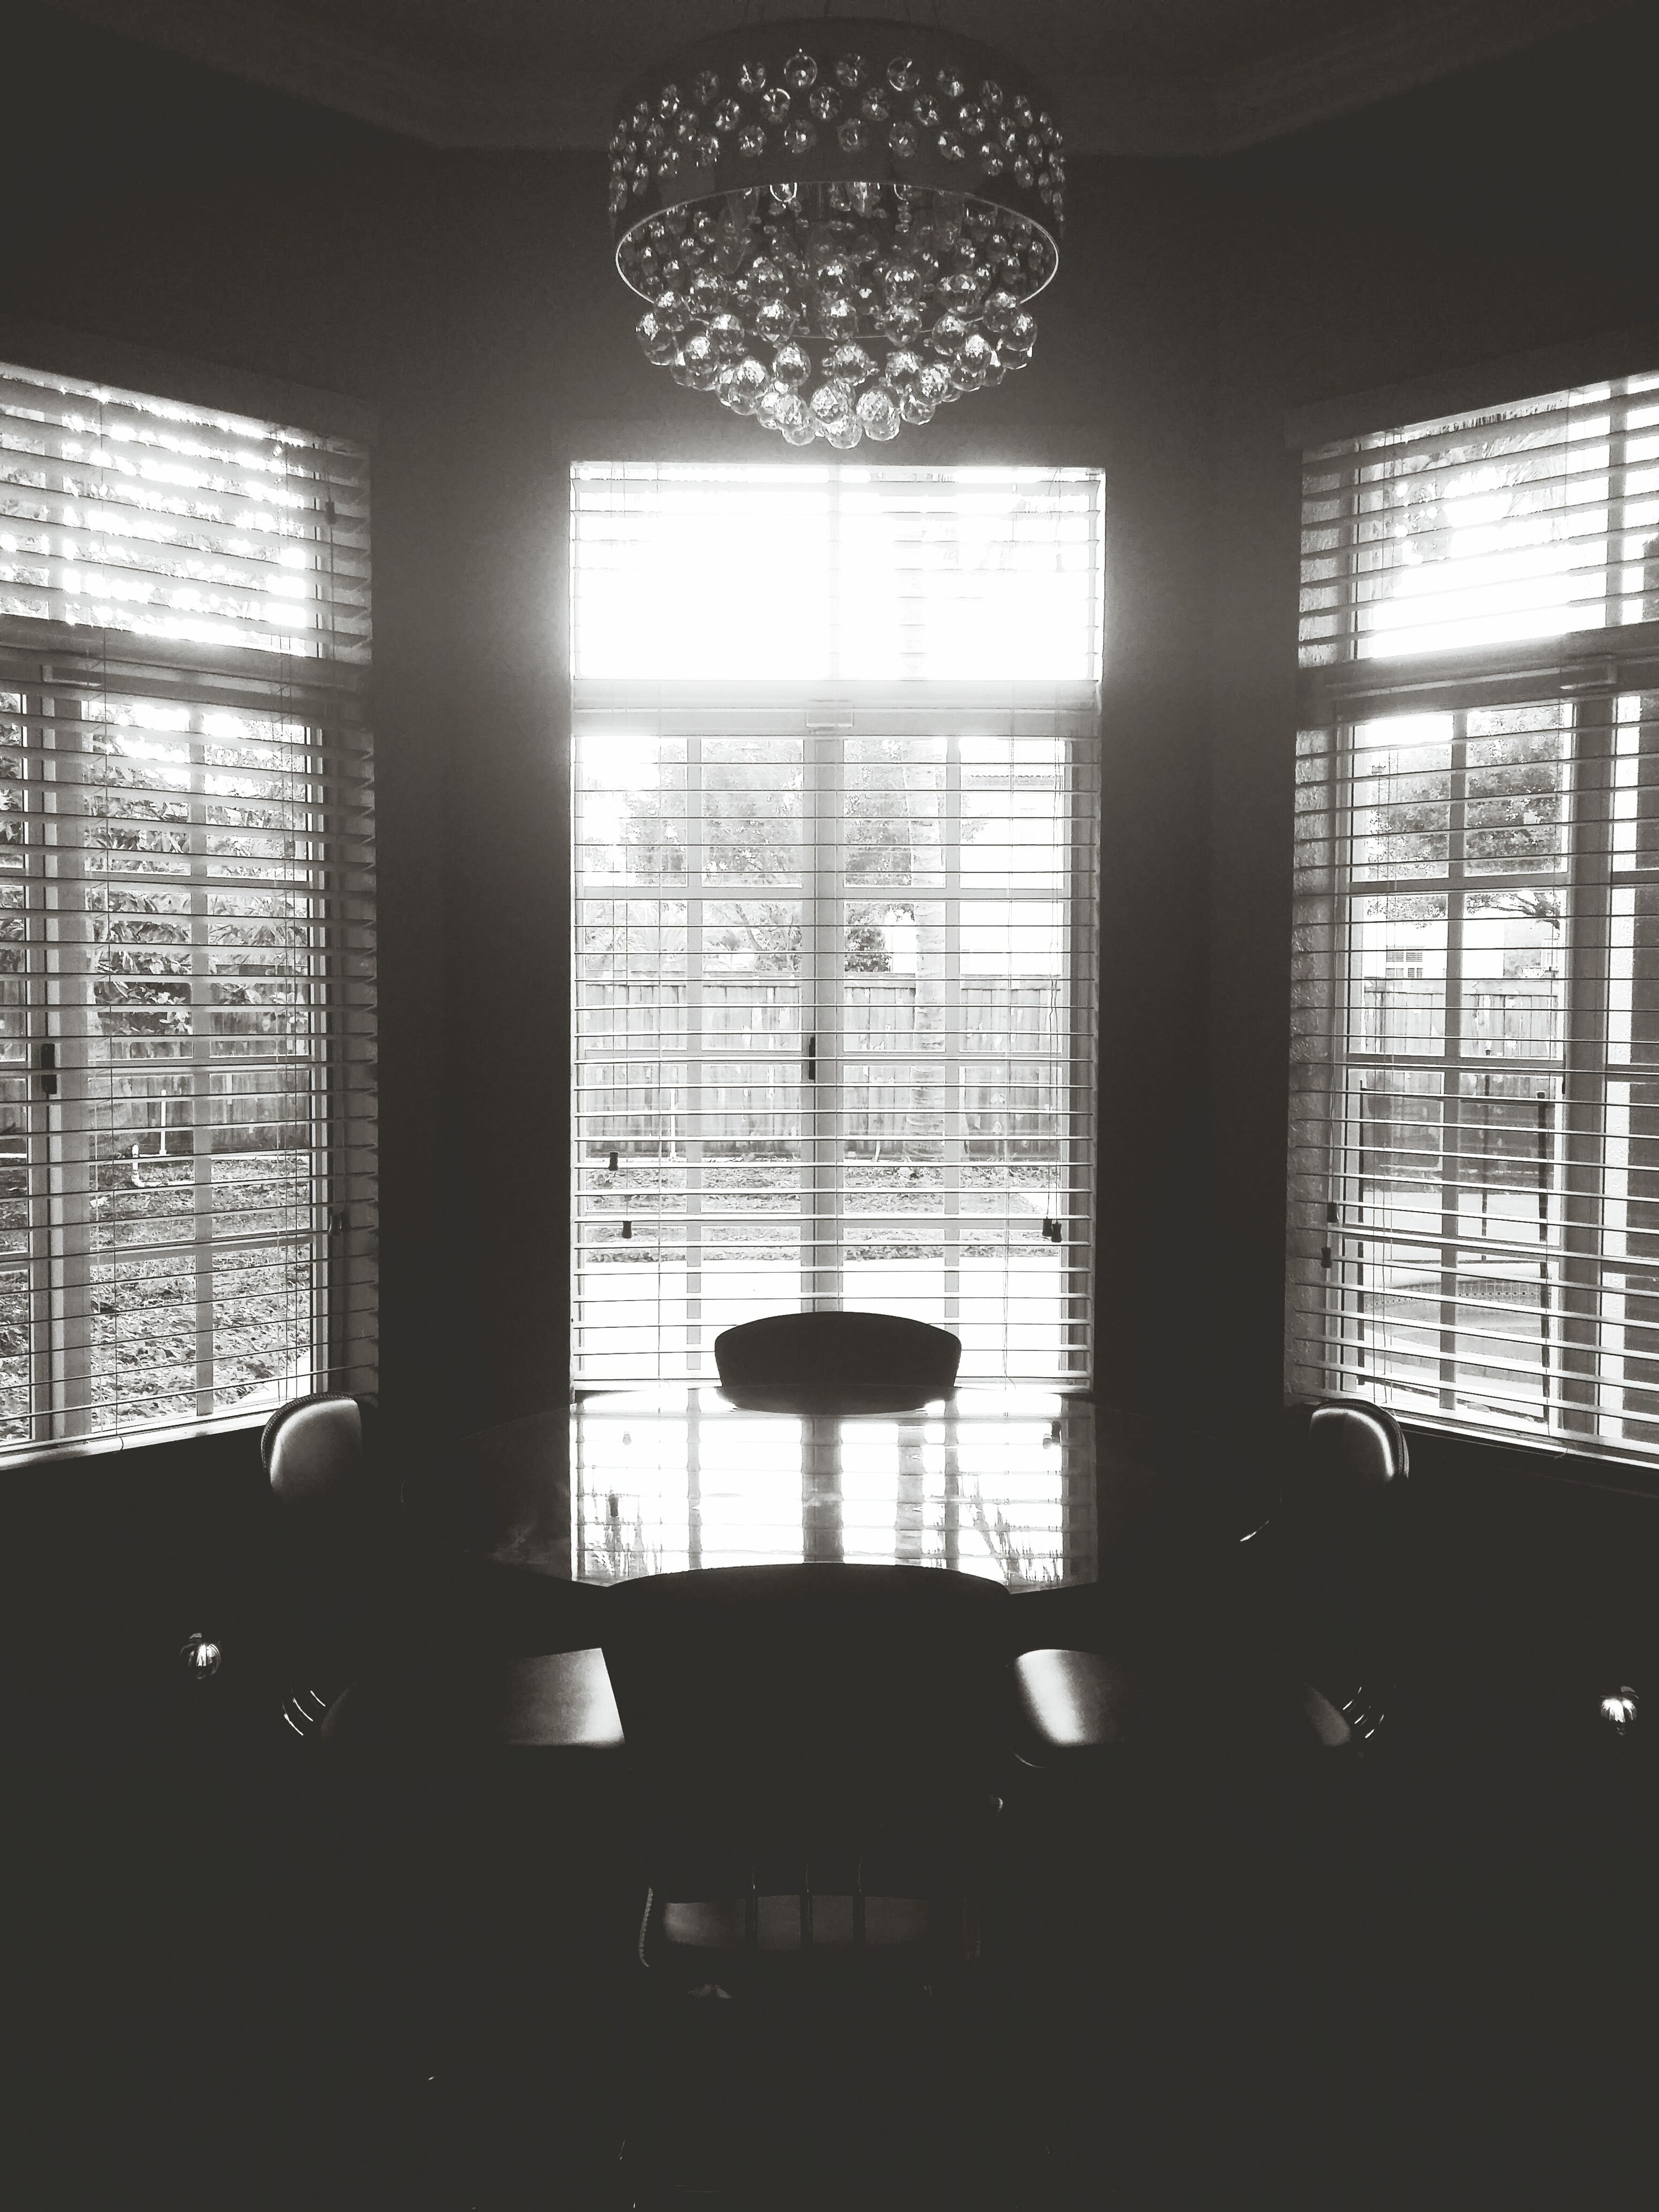 indoors, window, glass - material, home interior, lighting equipment, transparent, electric lamp, empty, ceiling, absence, chair, table, interior, architecture, illuminated, built structure, domestic room, hanging, chandelier, room